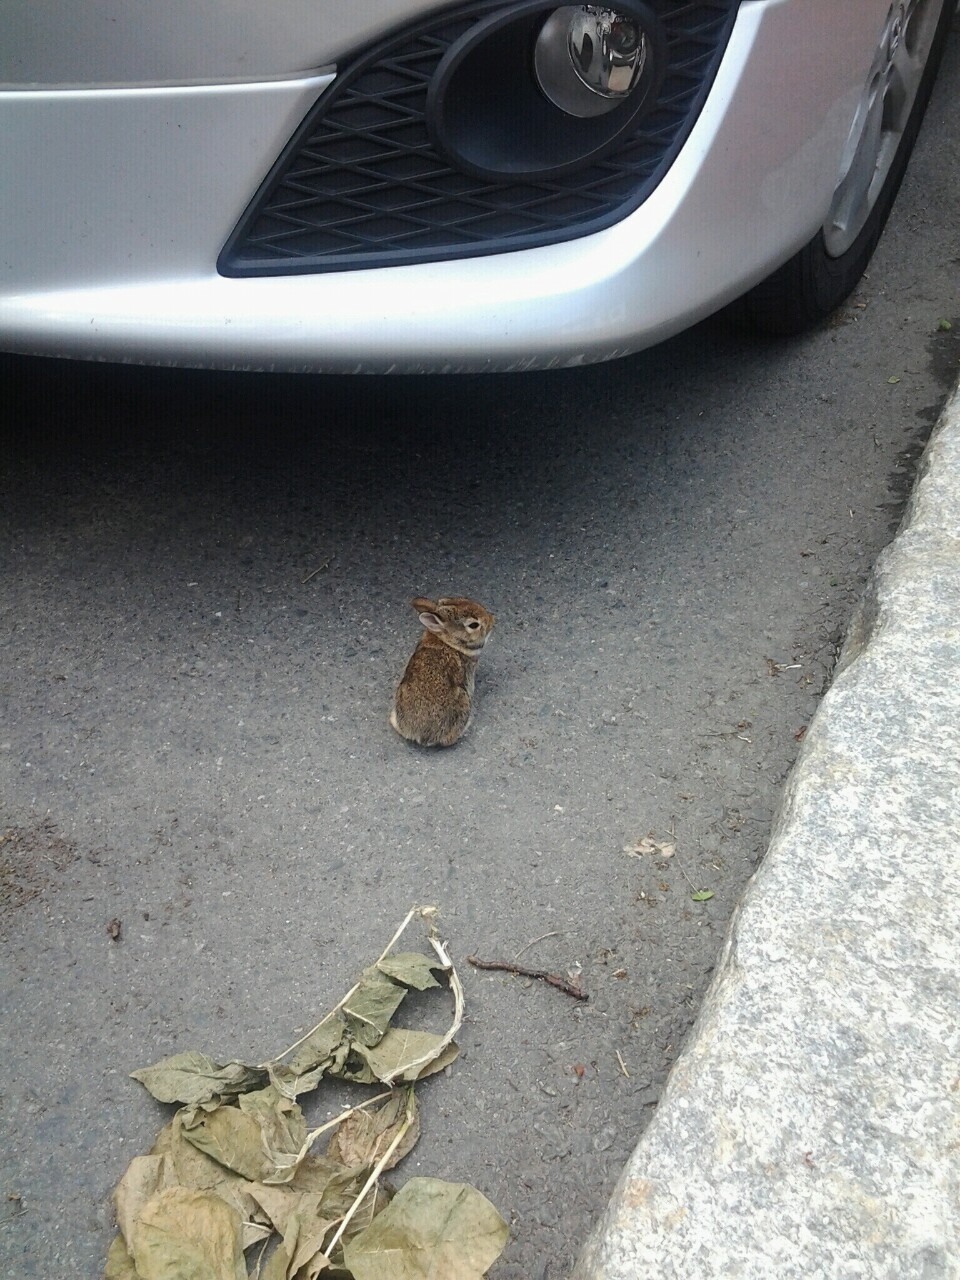 The Tiniest Bunny, as witnessed by Andrei near our apartment.